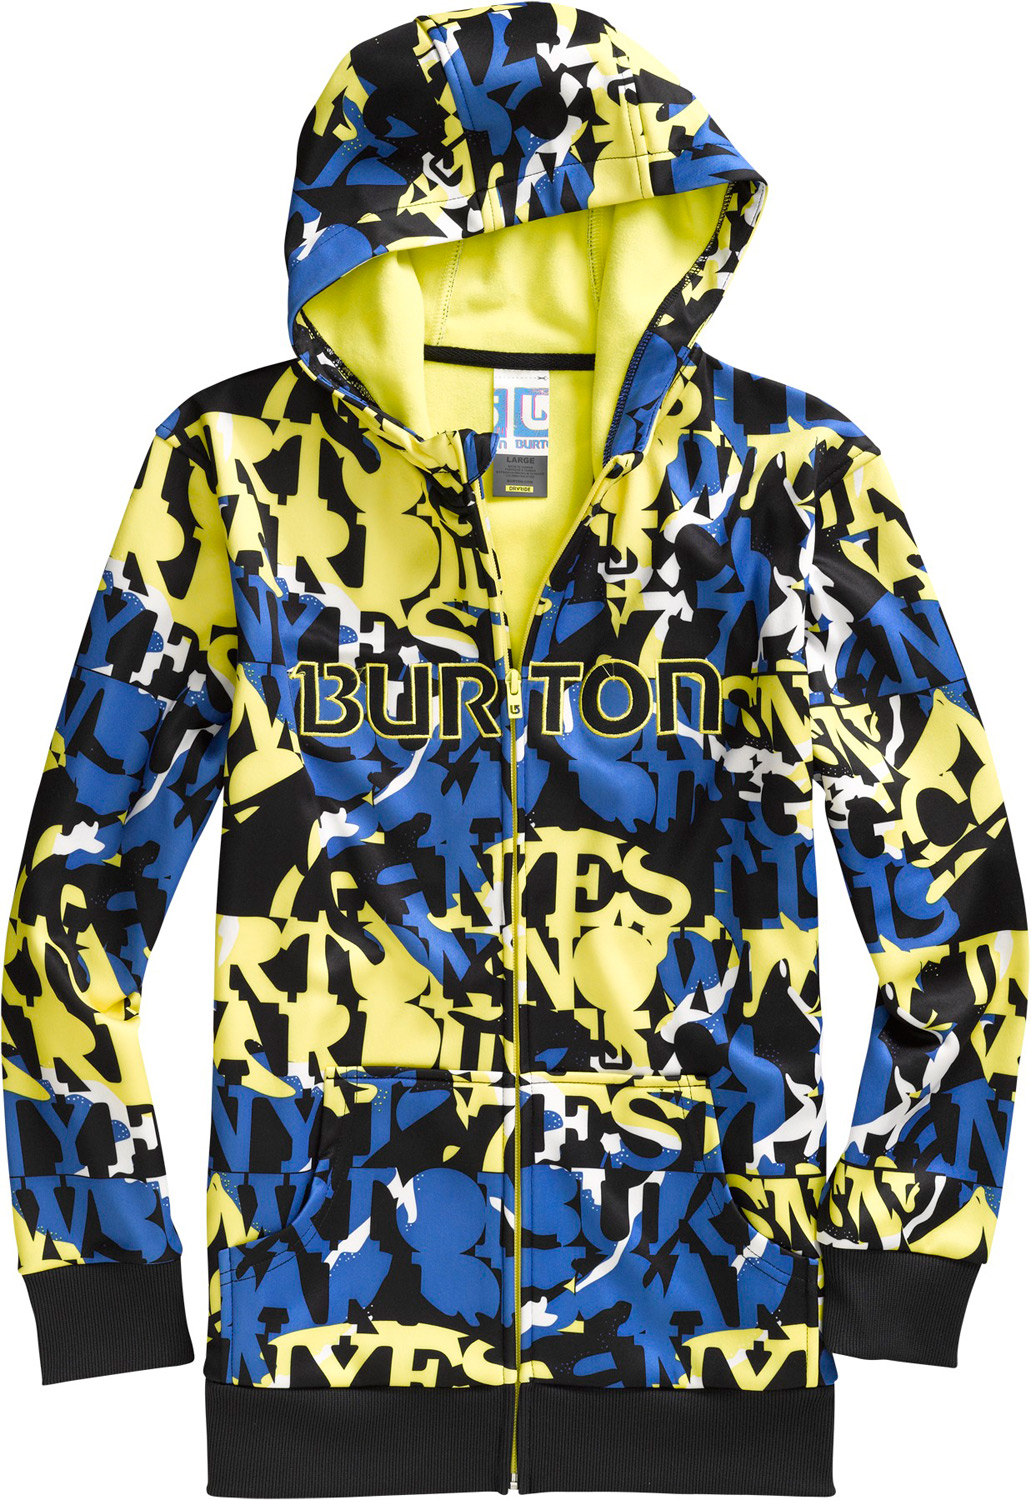 Snowboard The last hoodie you'll ever need. Ride, hike, or hang without succumbing to the chilling side effects of cotton.Key Features of the Burton Bonded Hoodie: DRYRIDE Thermex Bonded Fleece Sweatshirt Style Fulltime Hood Kangaroo Handwarmer Pockets Ribbed Cuffs and Hem Sig Fit - $35.95